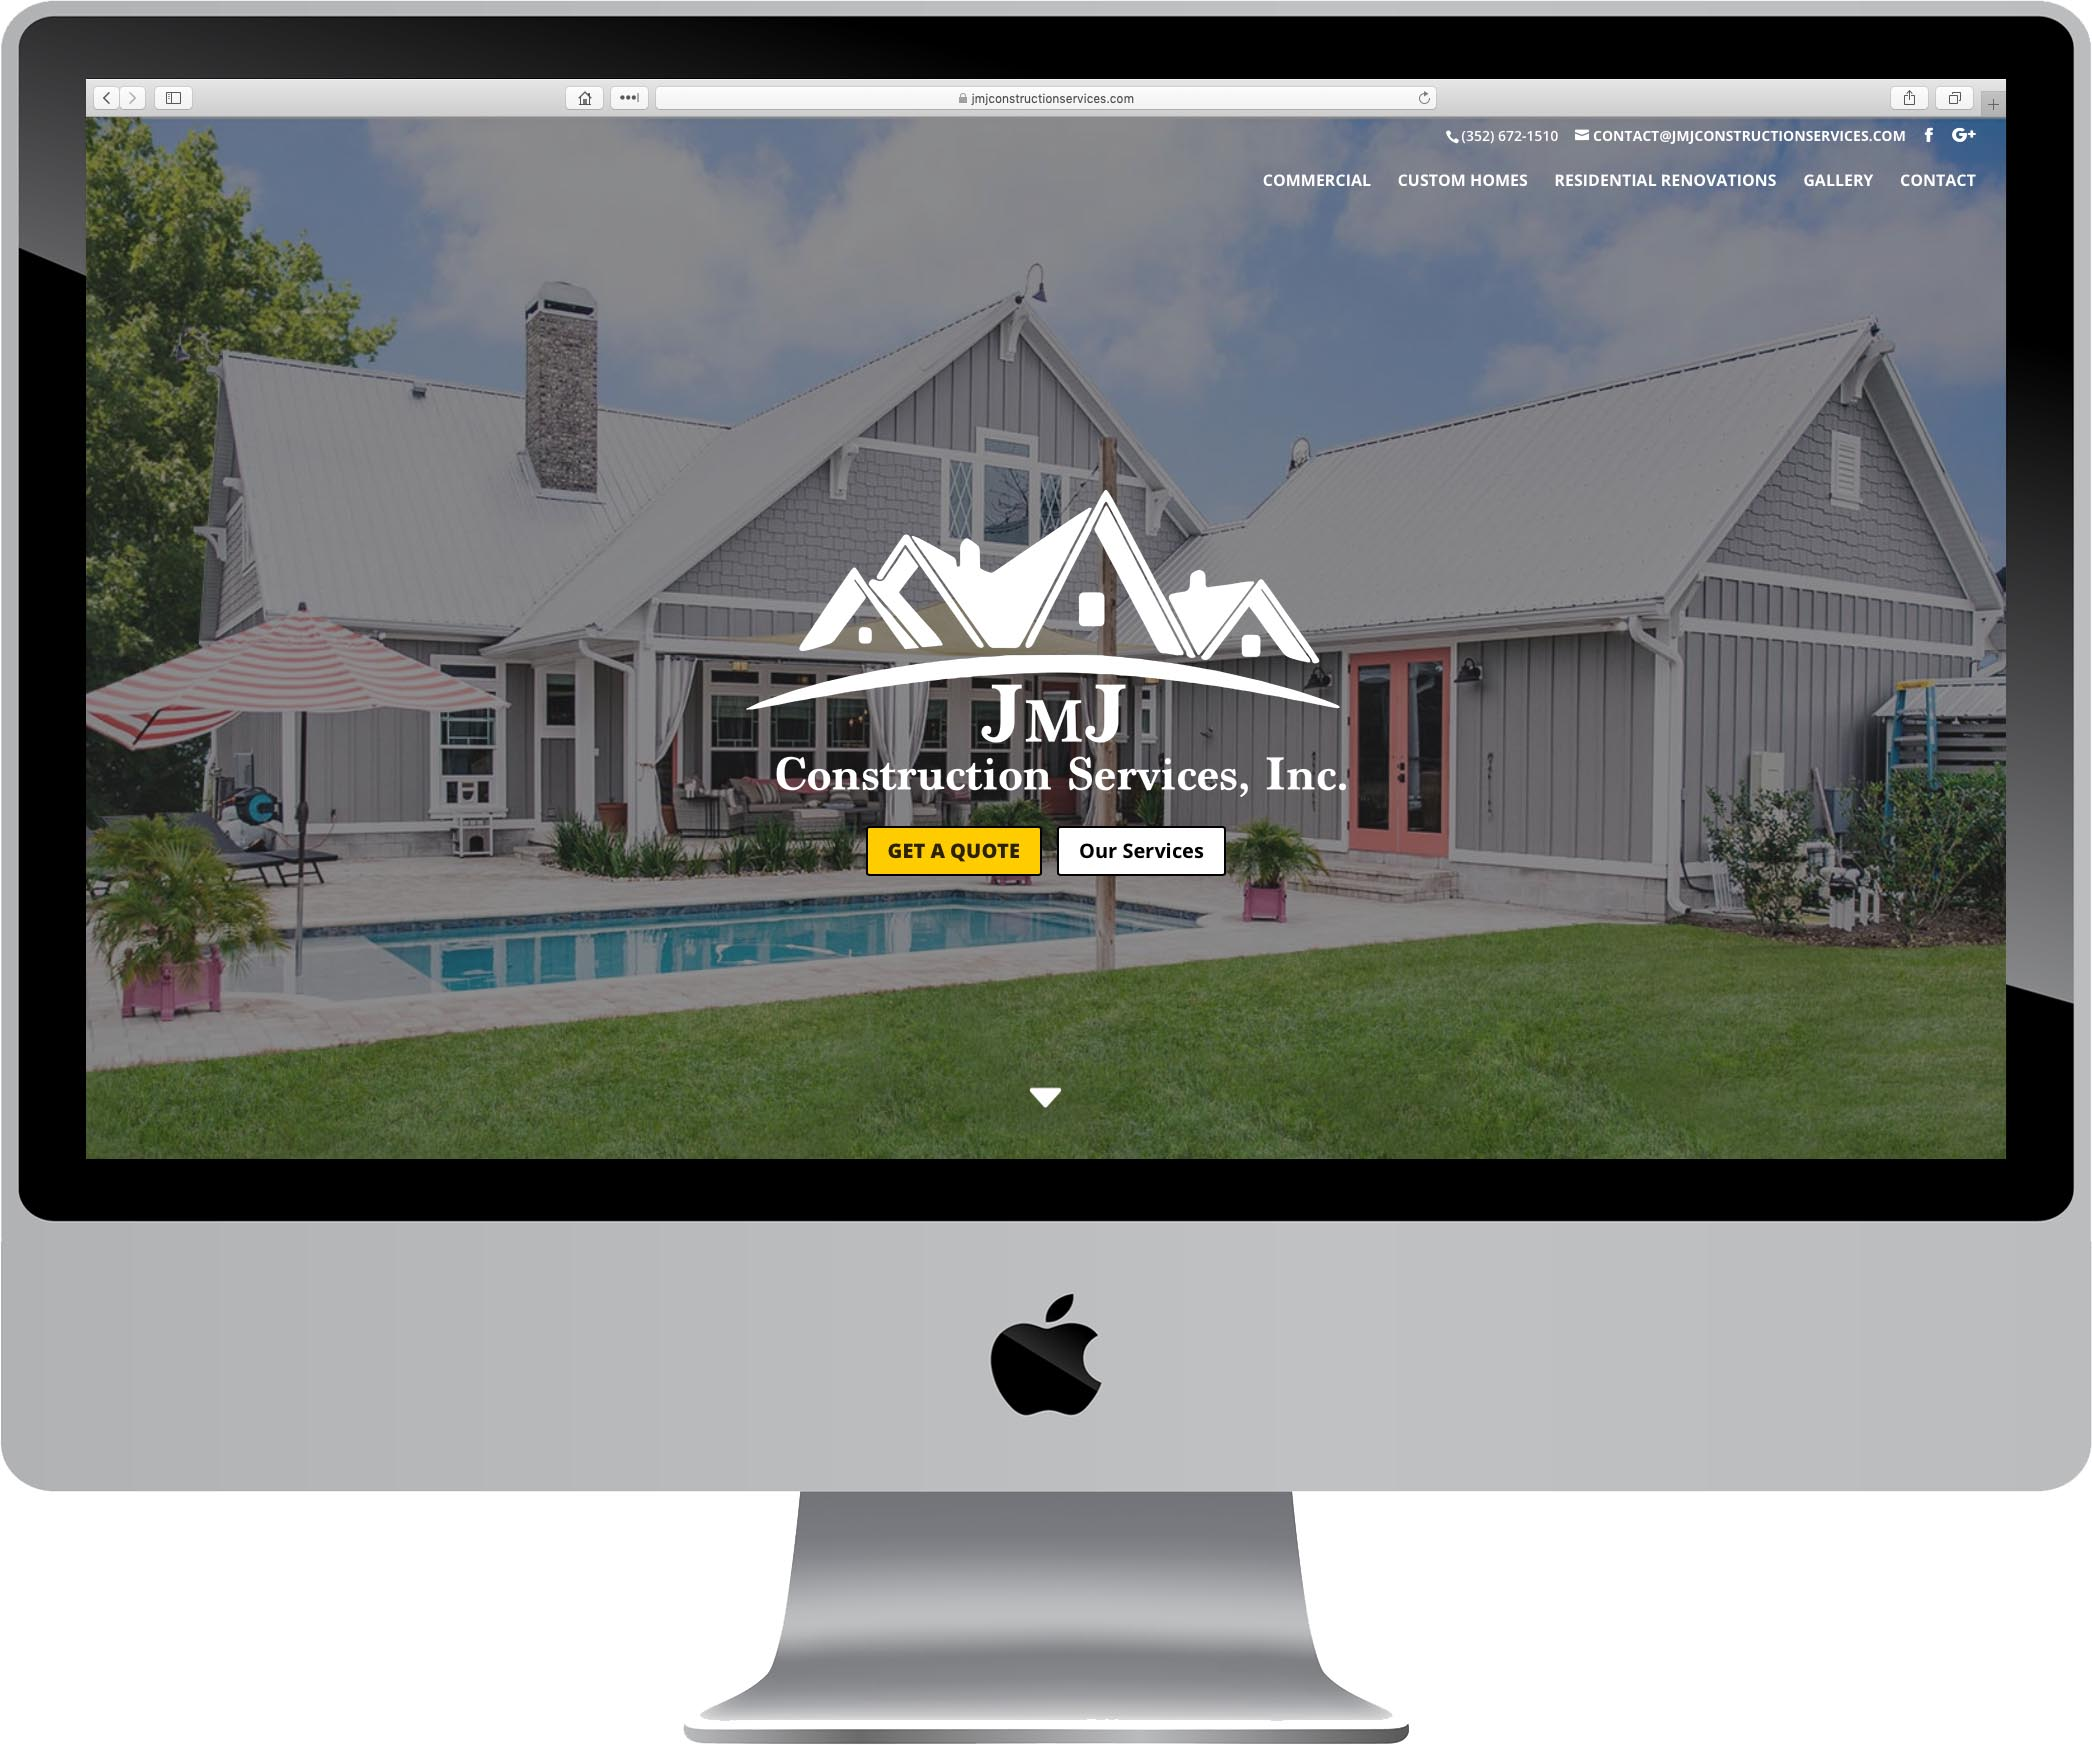 JMJ Construction Services Website Design